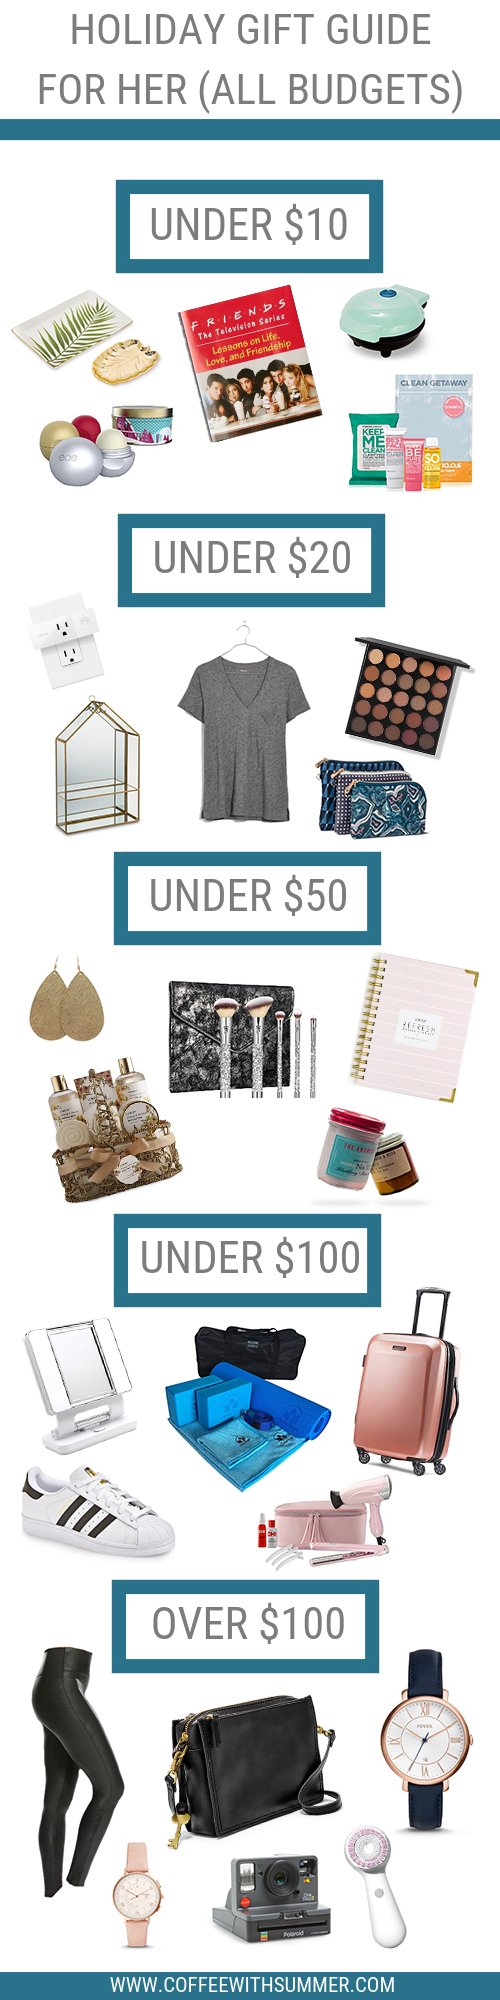 Holiday Gift Guide For Her (All Budgets)